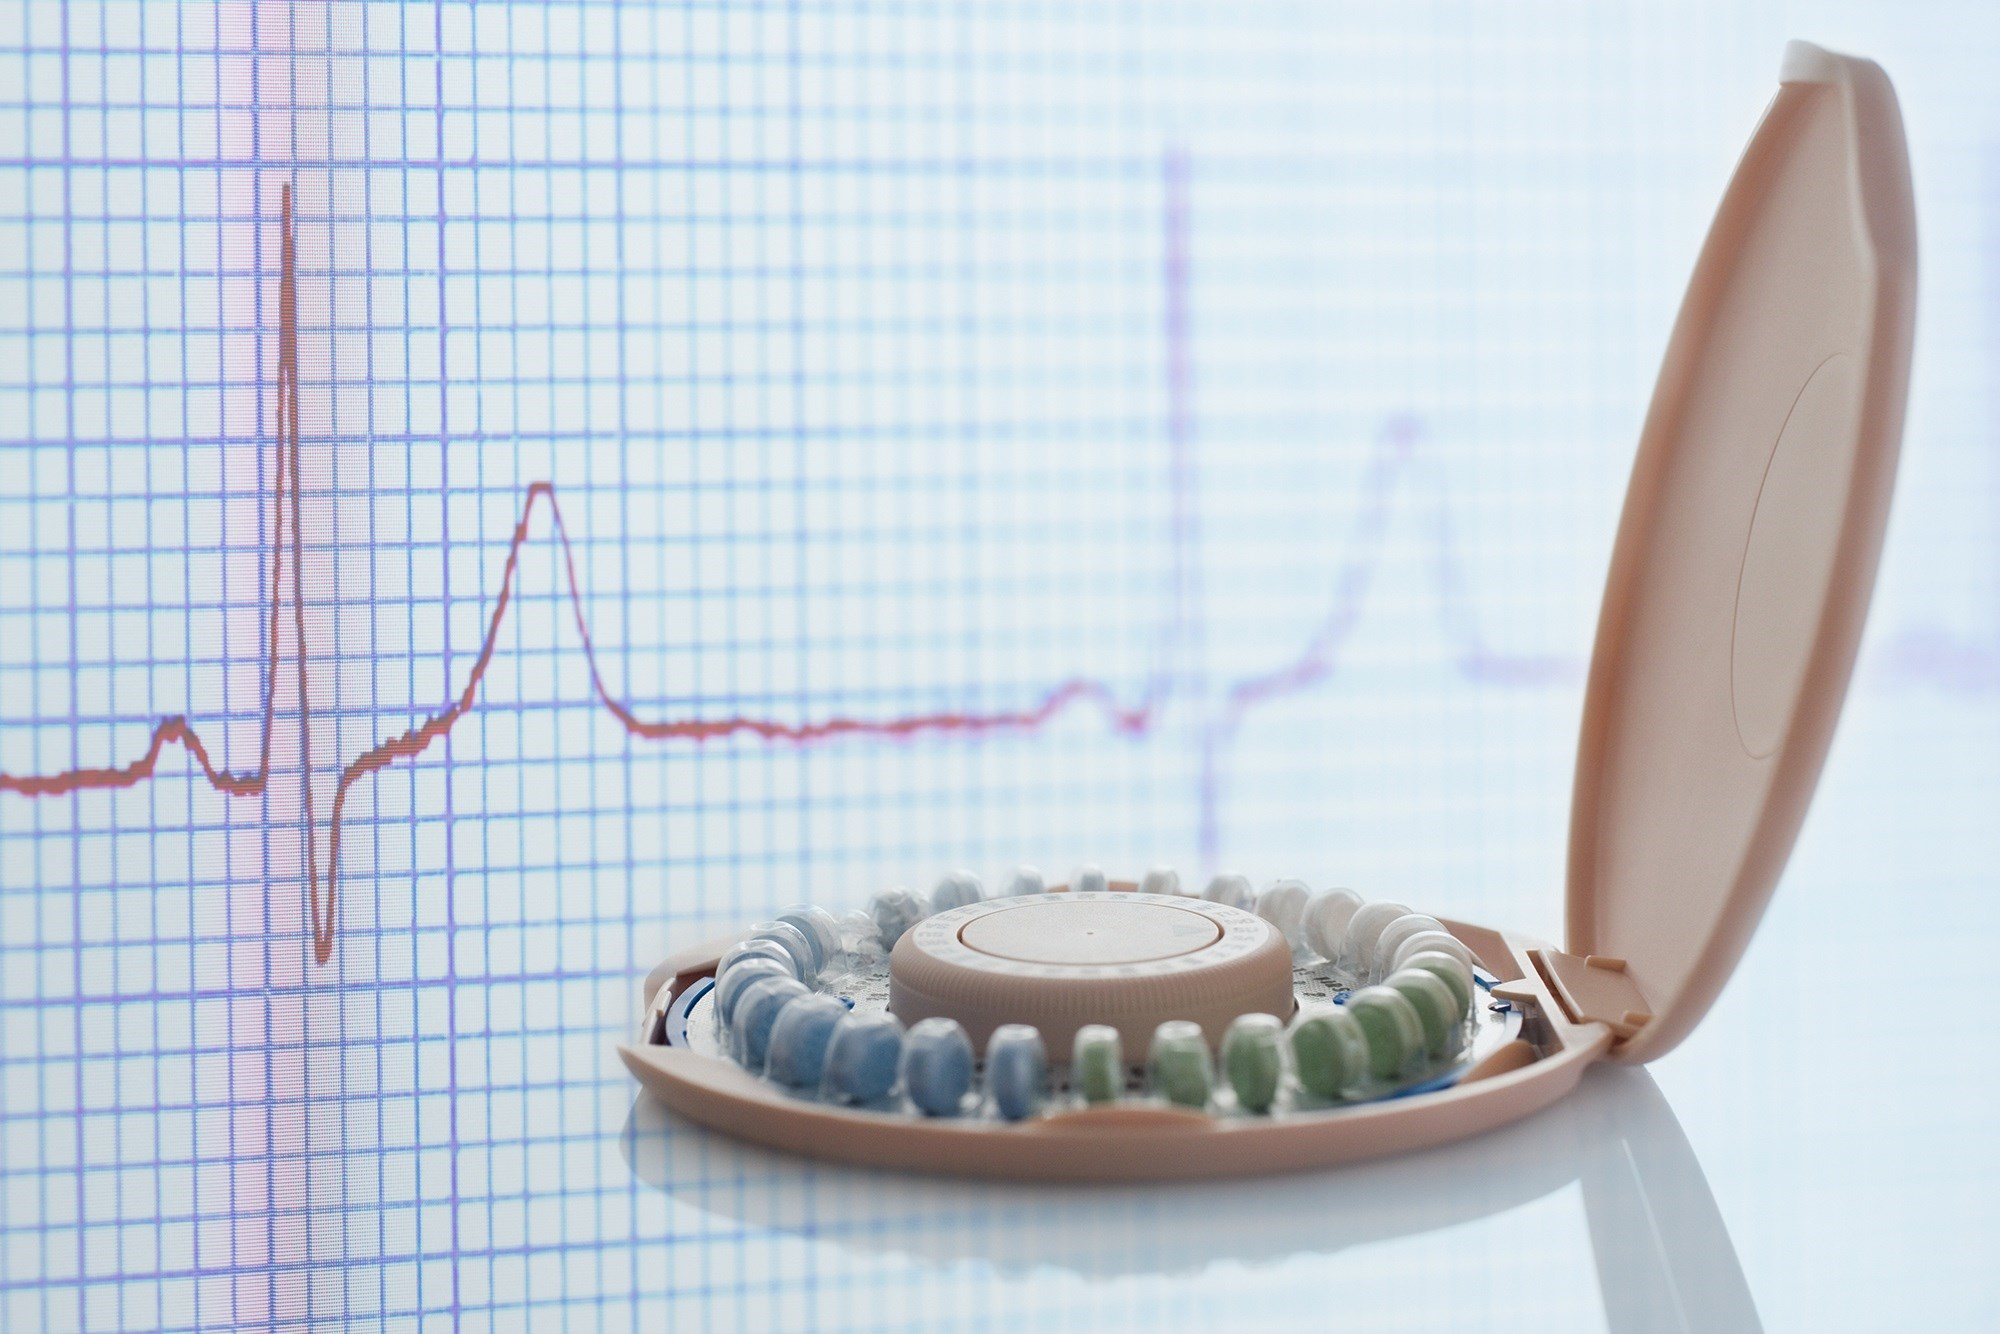 Oral Contraceptives Associated With Ventricular Repolarization Alterations